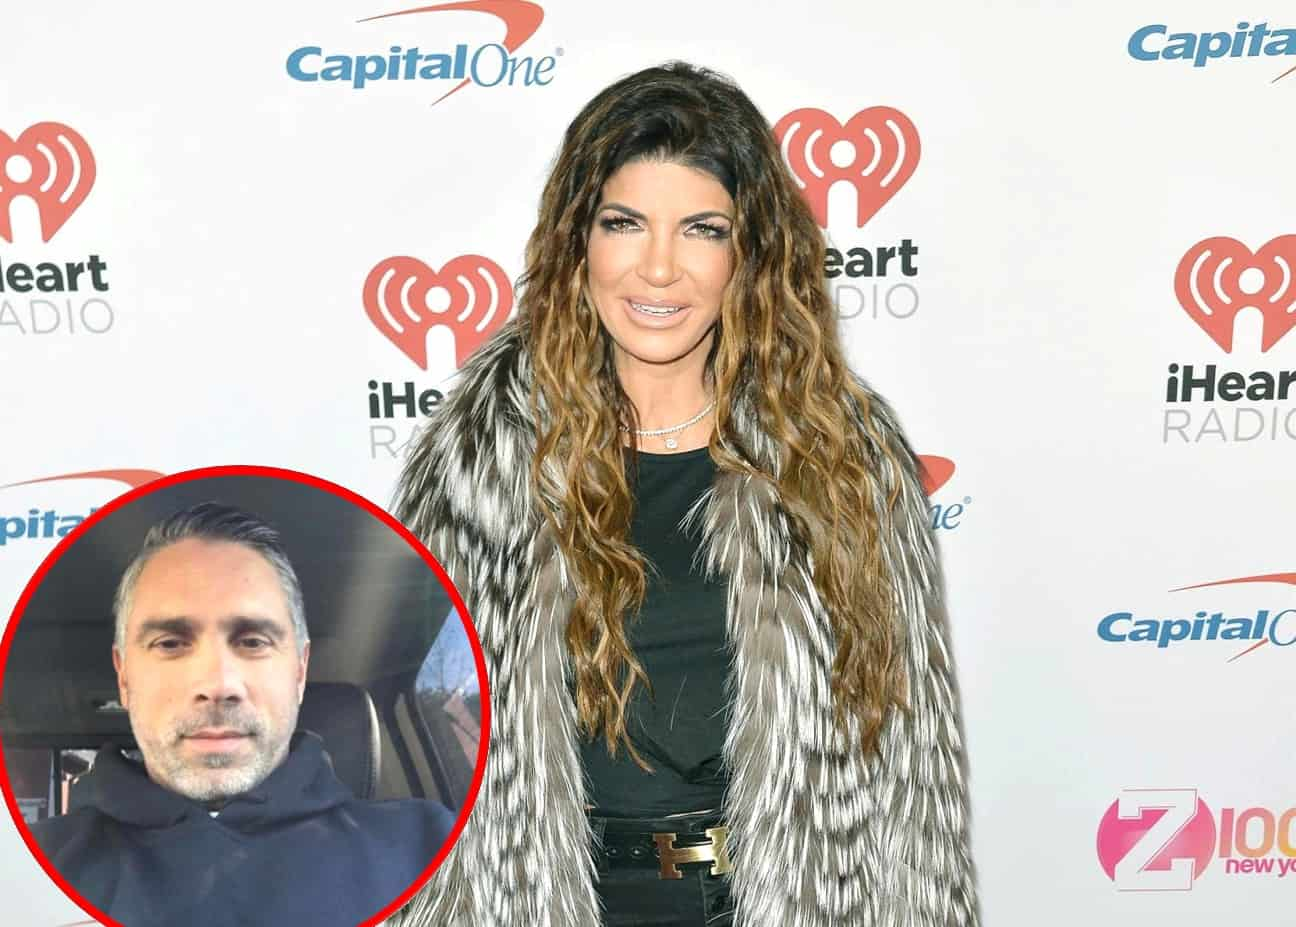 Teresa Giudice Spotted Out with Ex Anthony Delorenzo 'Talking and Laughing' as Sources Report His Appearance on Next Season of RHONJ